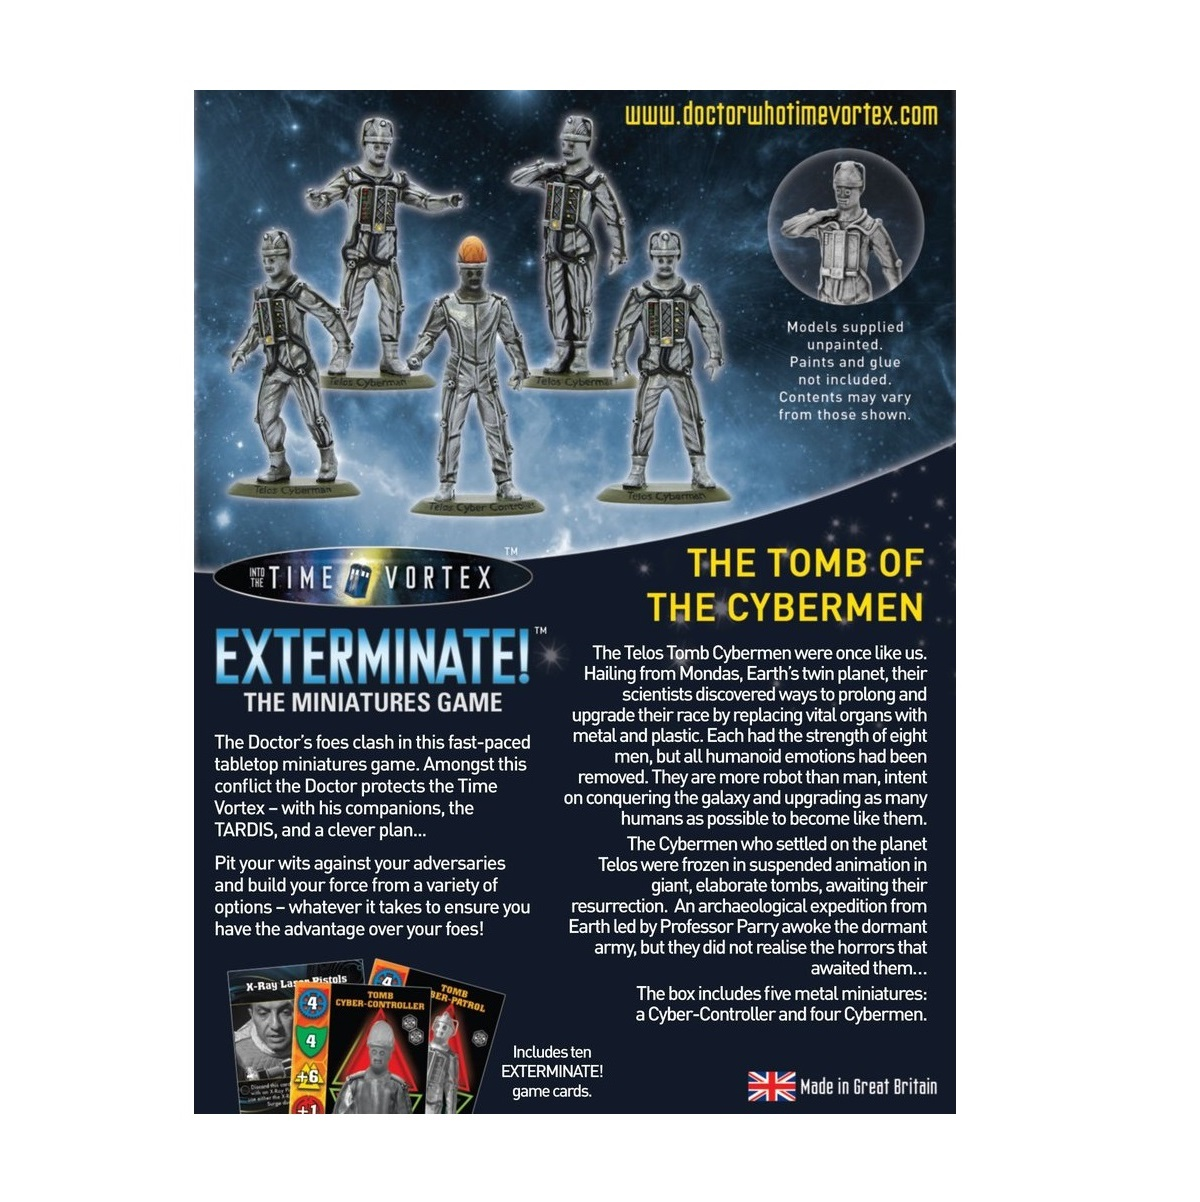 Doctor Who Exterminate Cards